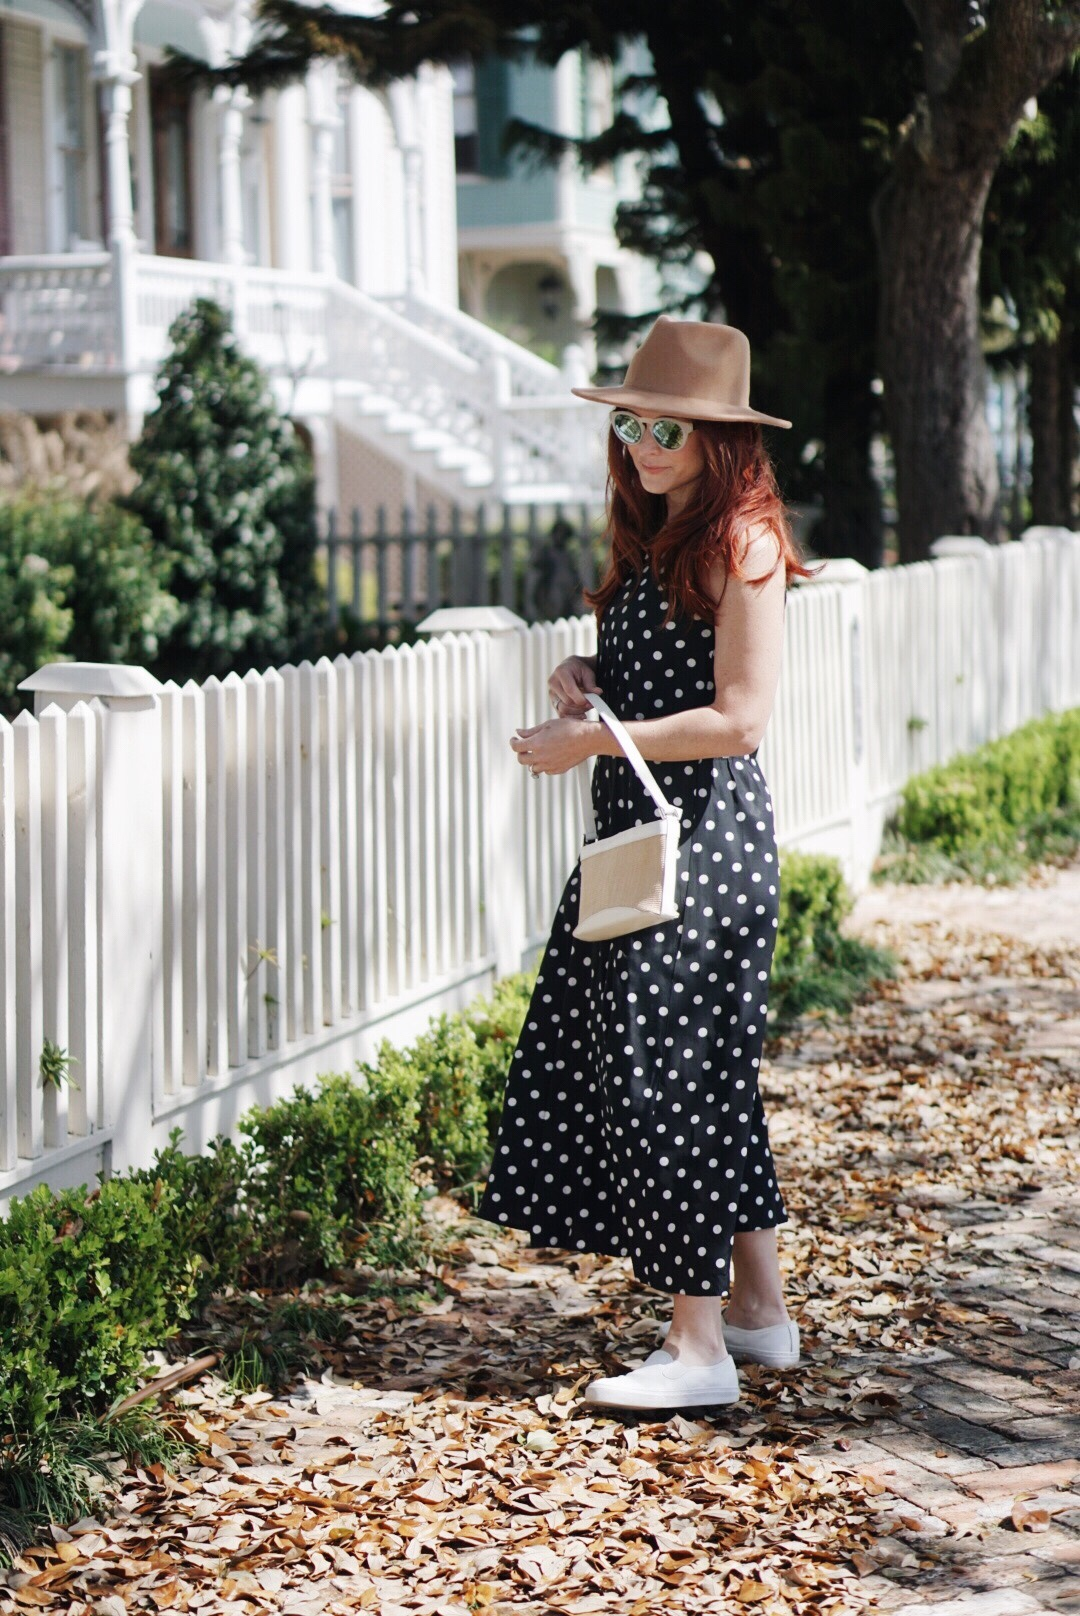 straw bags, polka dot outfit, black and white dress, dresses with sneakers, brown hat